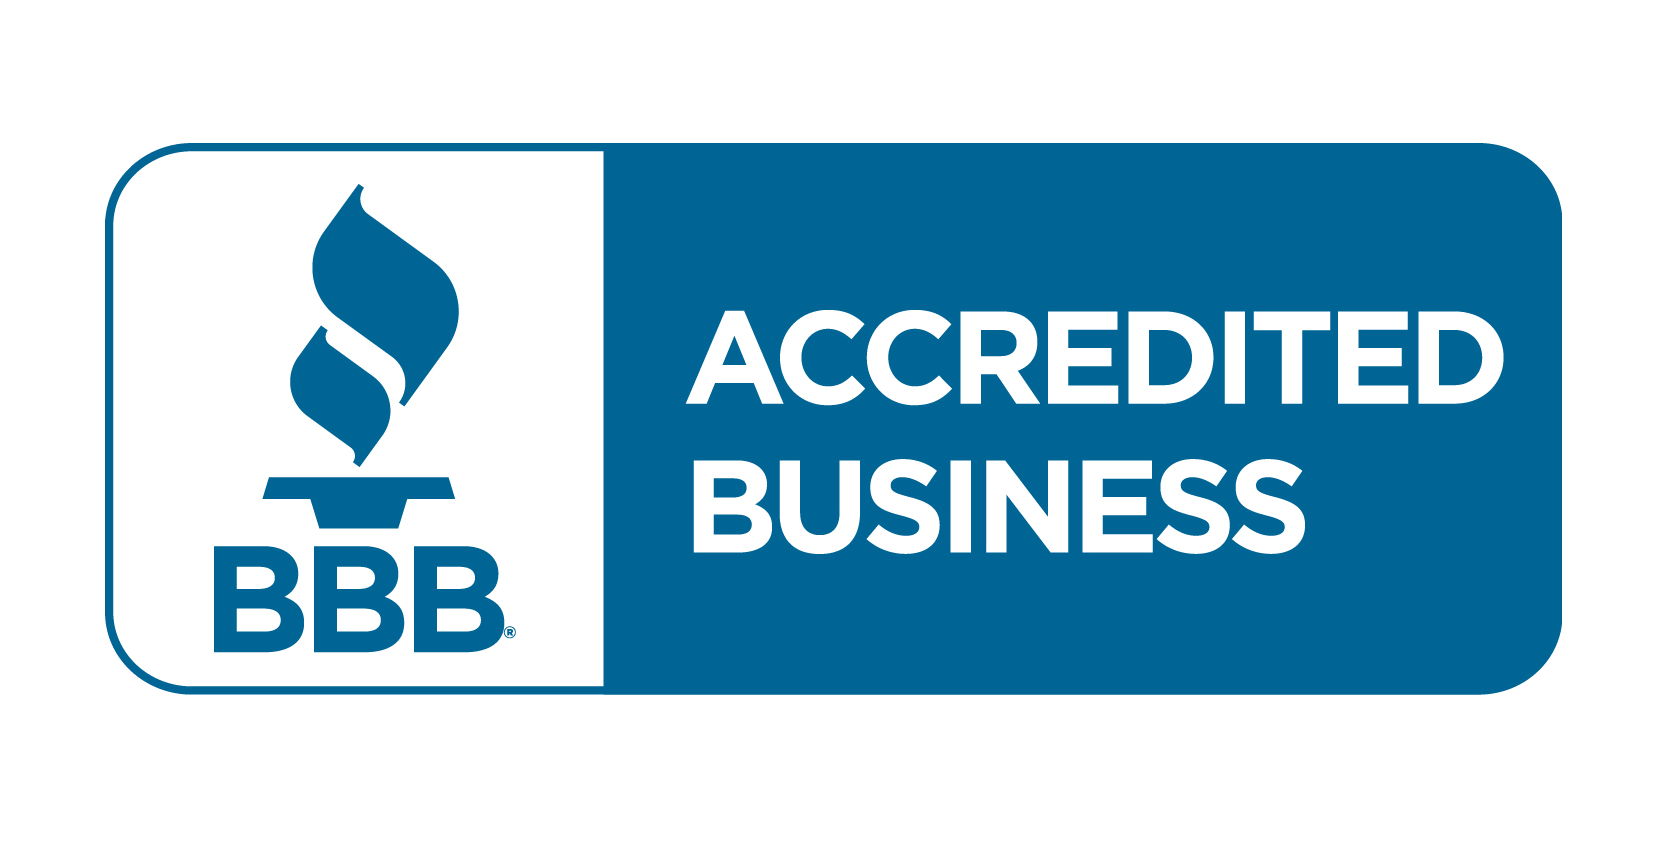 Hot Tub Heroes is a Better Business Bureau Accredited Business